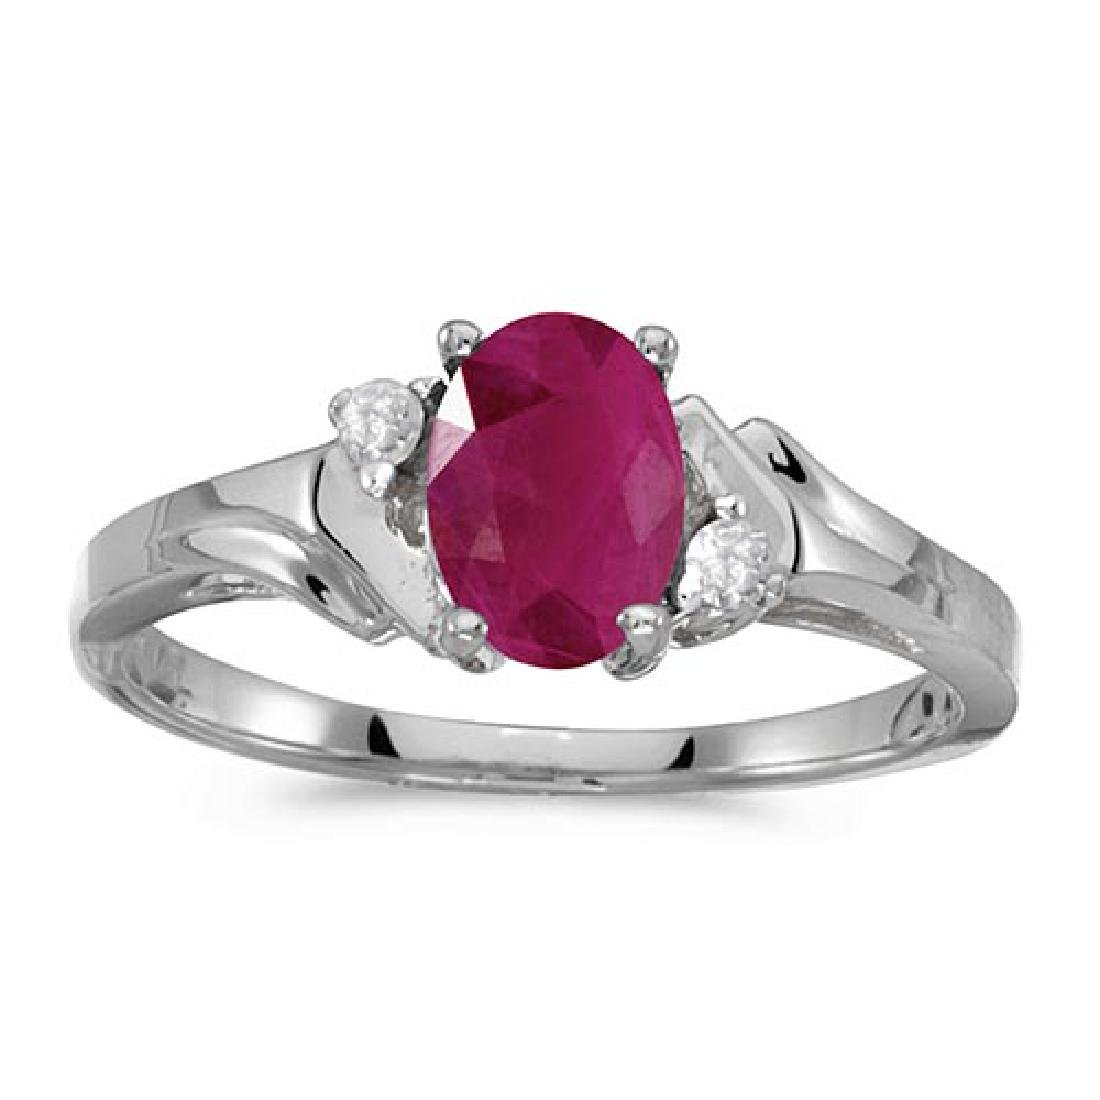 Certified 10k White Gold Oval Ruby And Diamond Ring